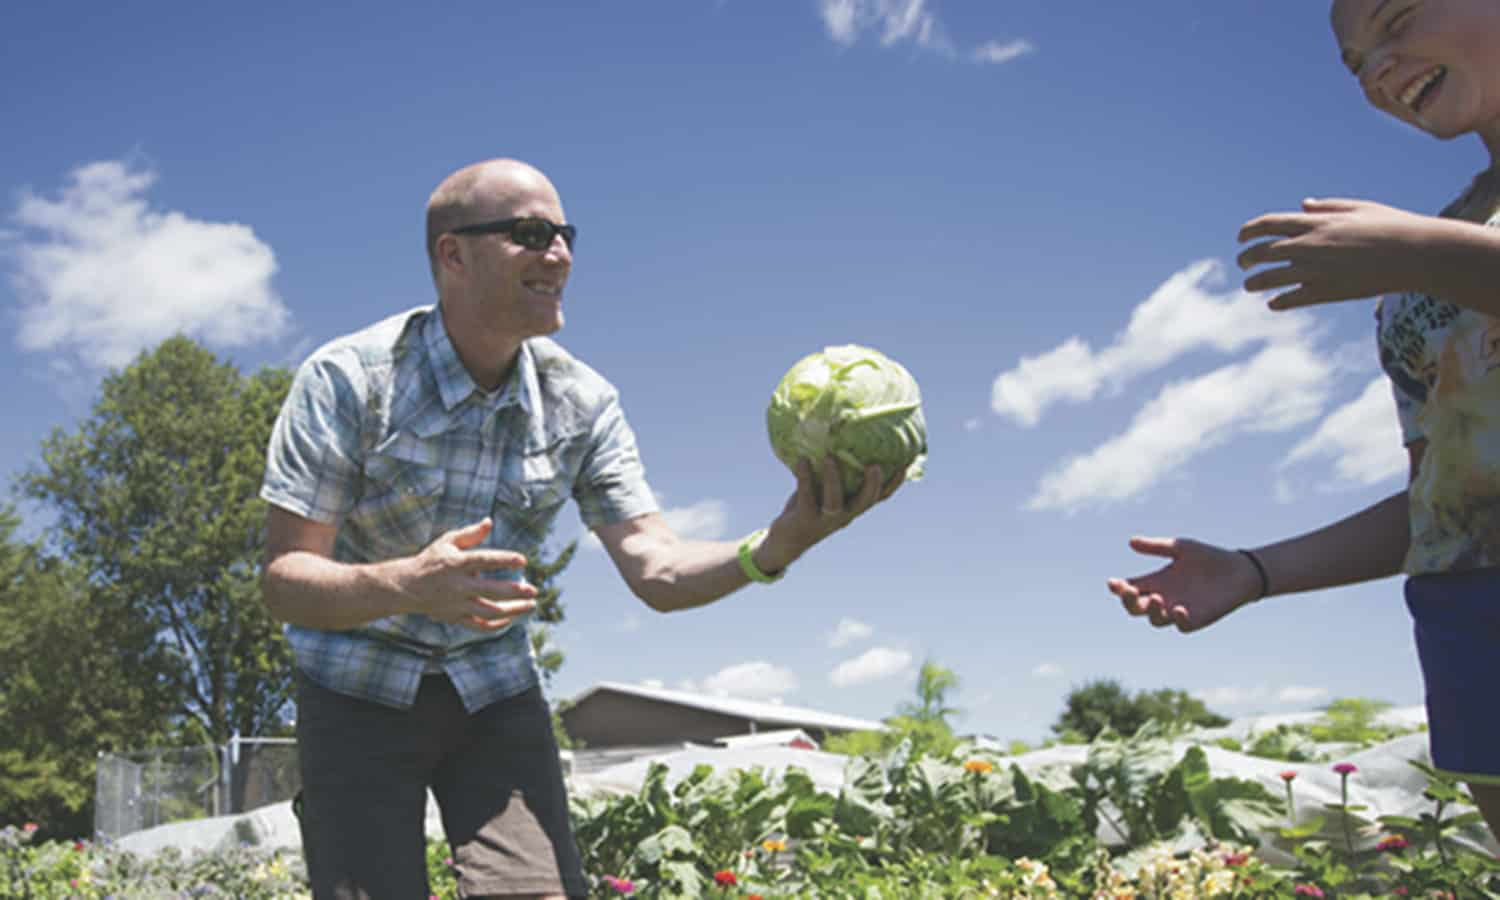 Fred Haberman's marketing agency and aquaponics farm have helped push organic into the mainstream, leading the way for a more transparent food system and, little-by-little, reducing our dependence on chemical agriculture.